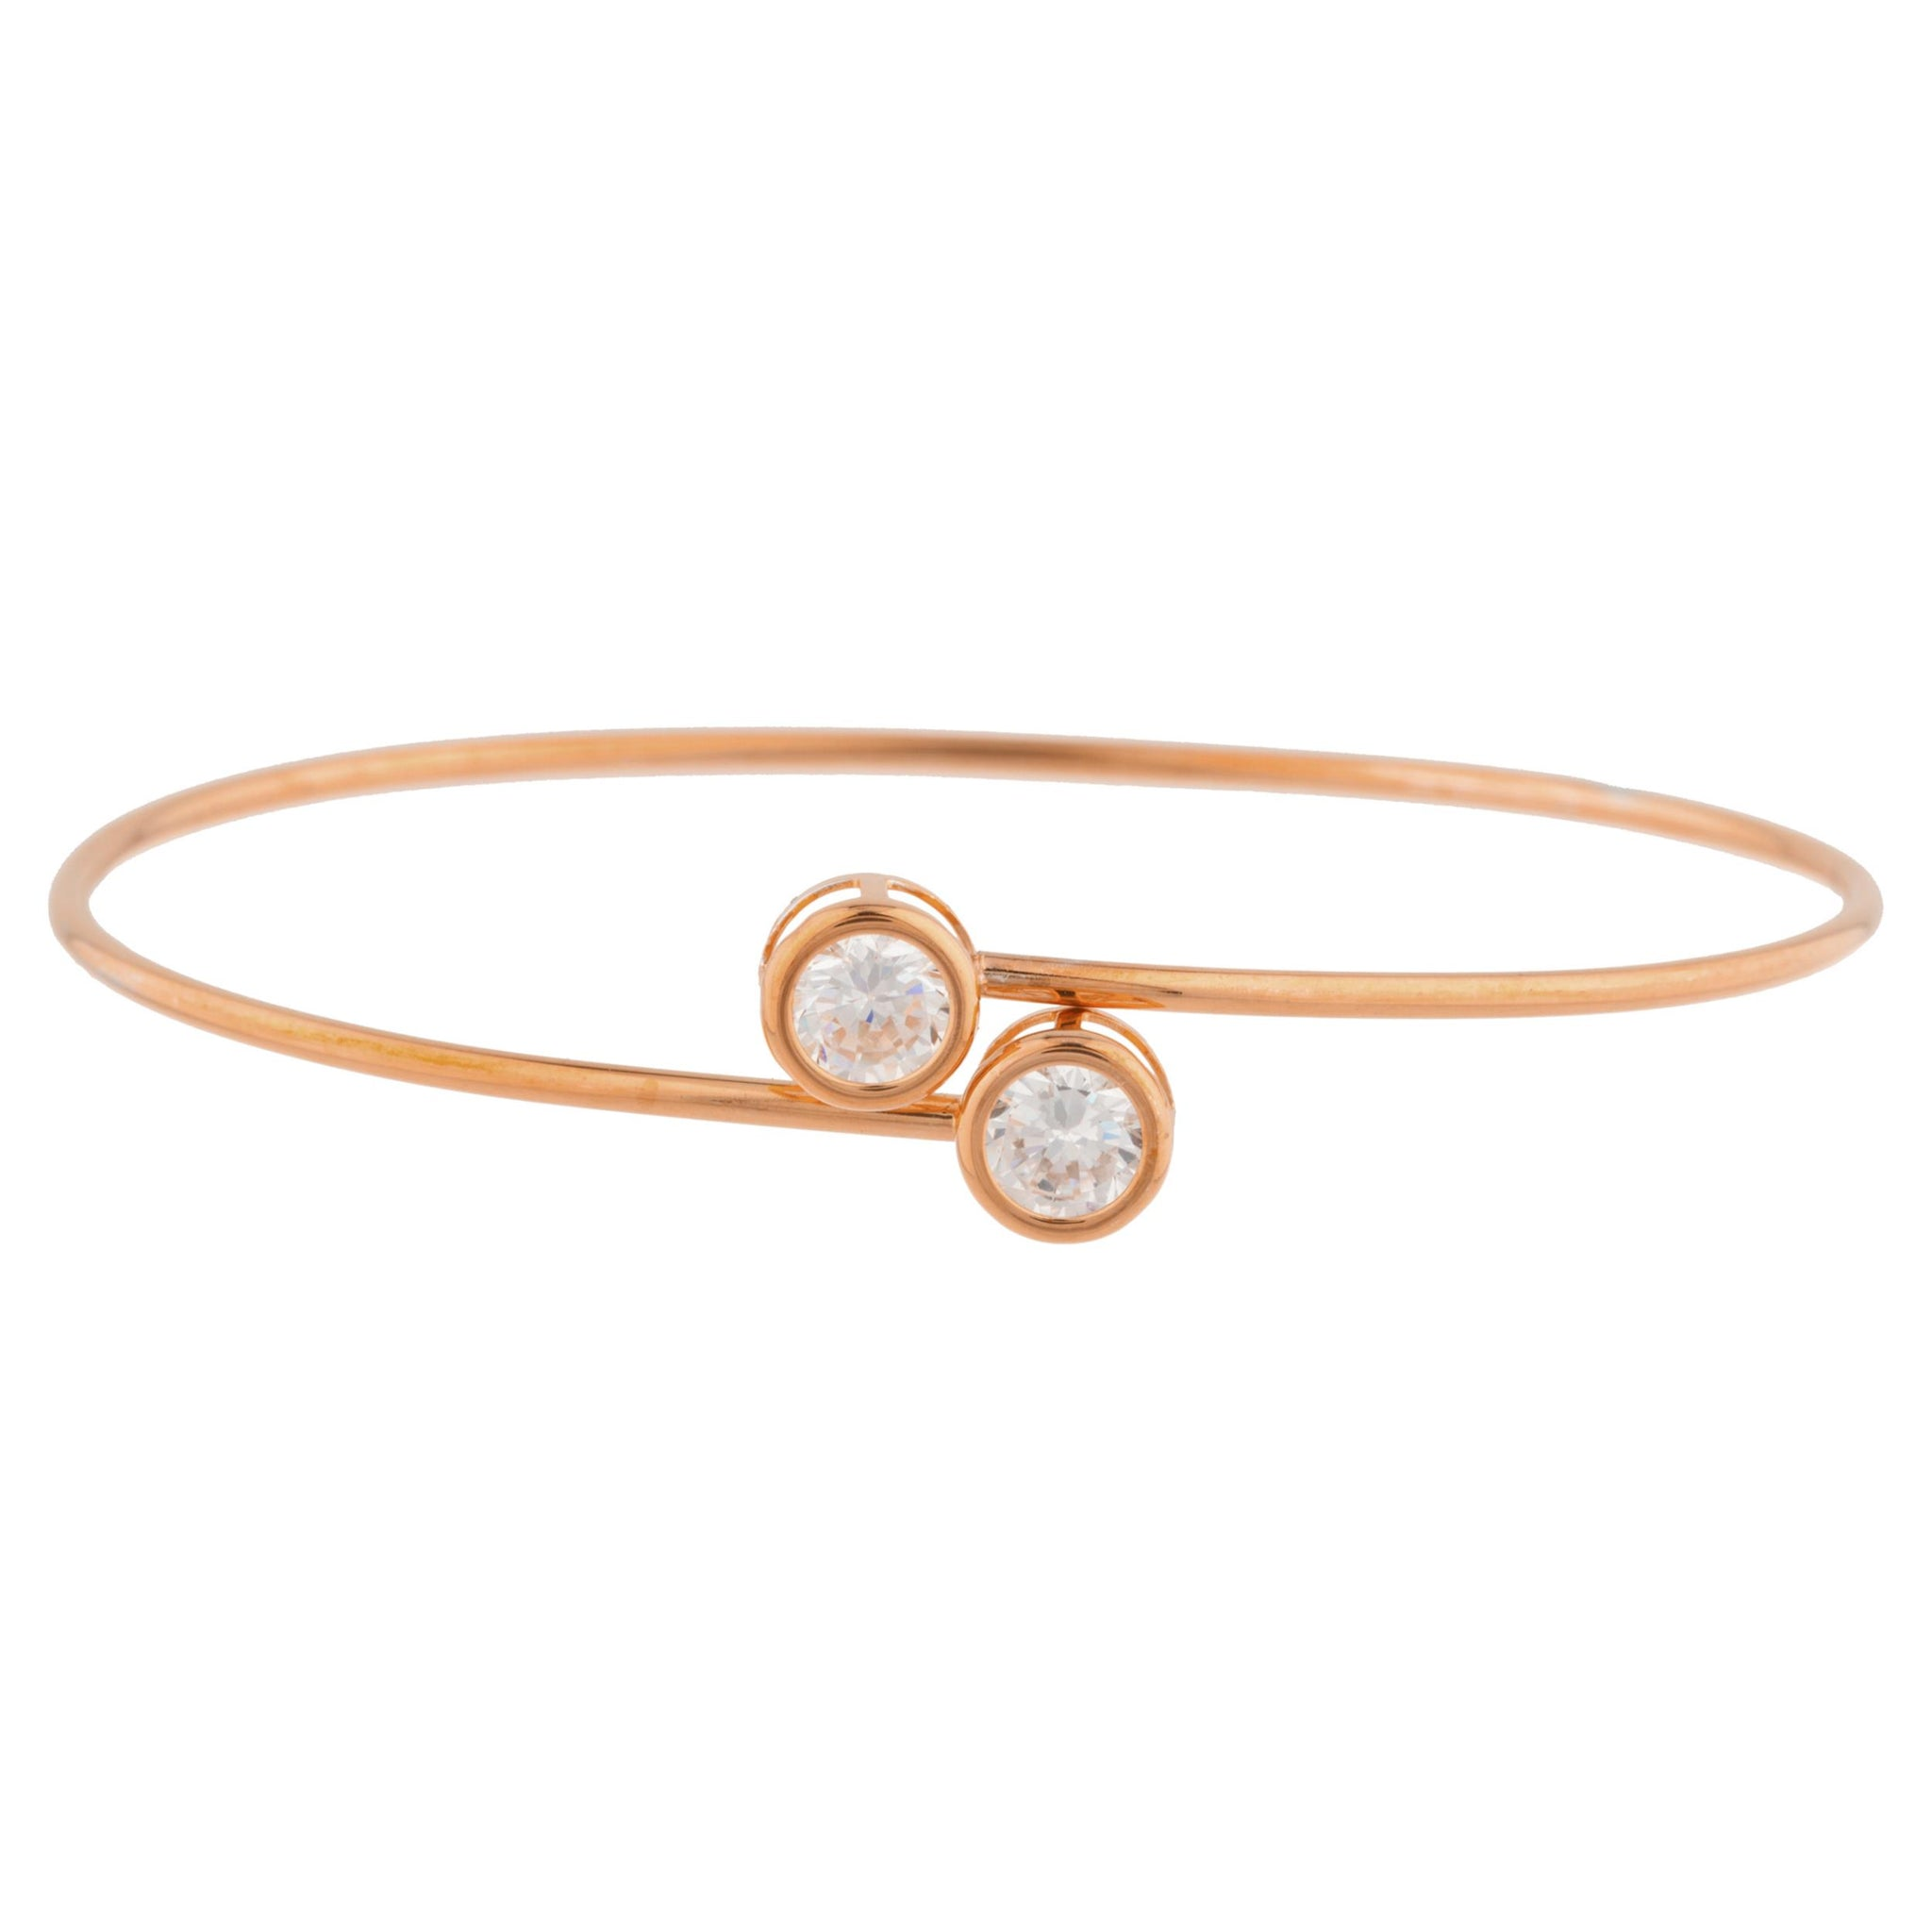 14Kt Rose Gold Plated Zirconia Round Bezel Bangle Bracelet